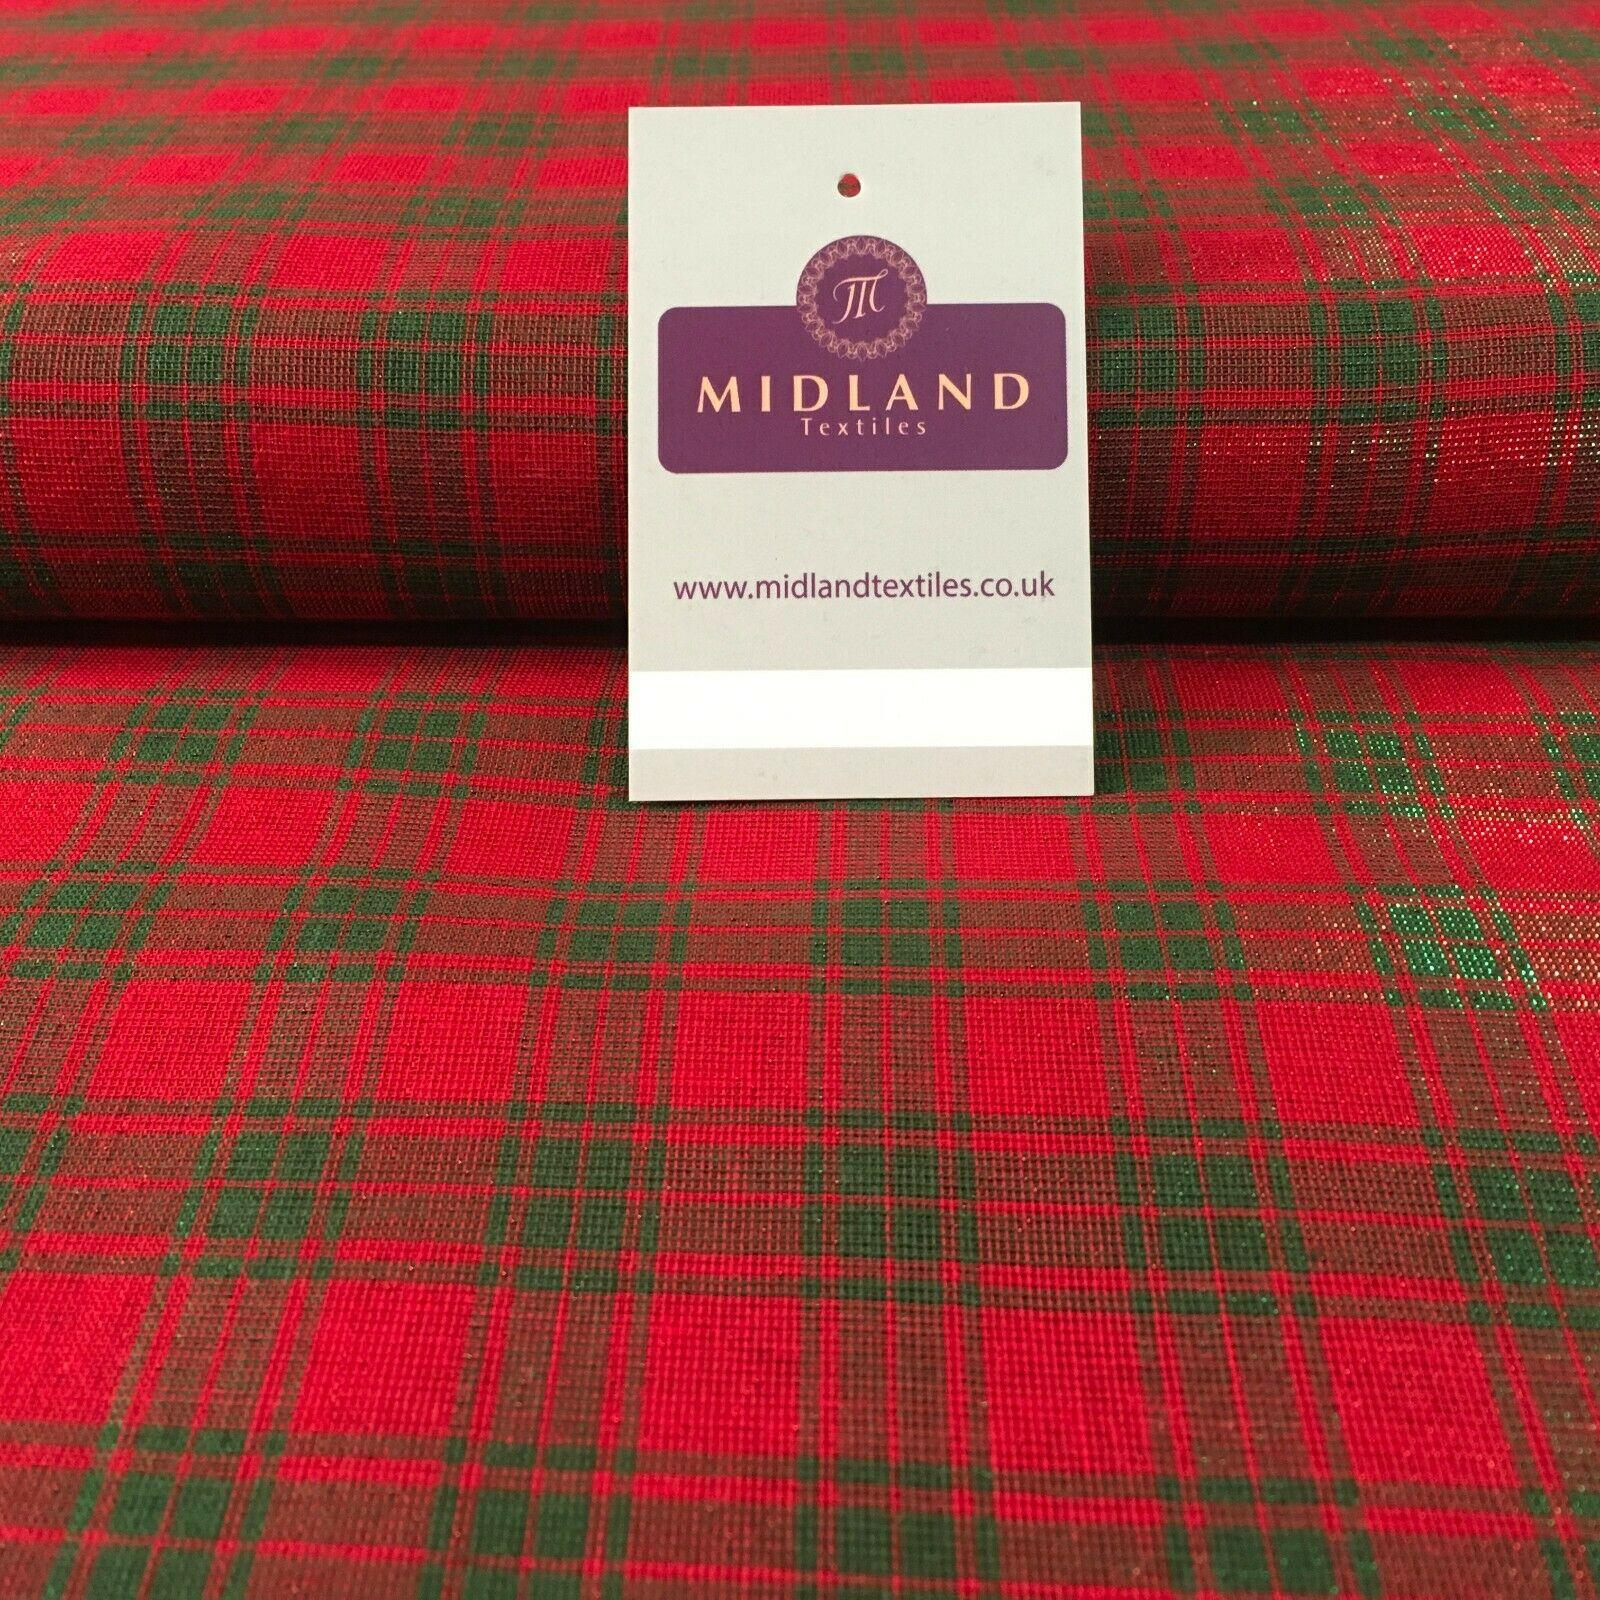 Tartan Check Cotton Lurex Christmas Sparkly Party fabric 110cm Wide MD1161 Mtex